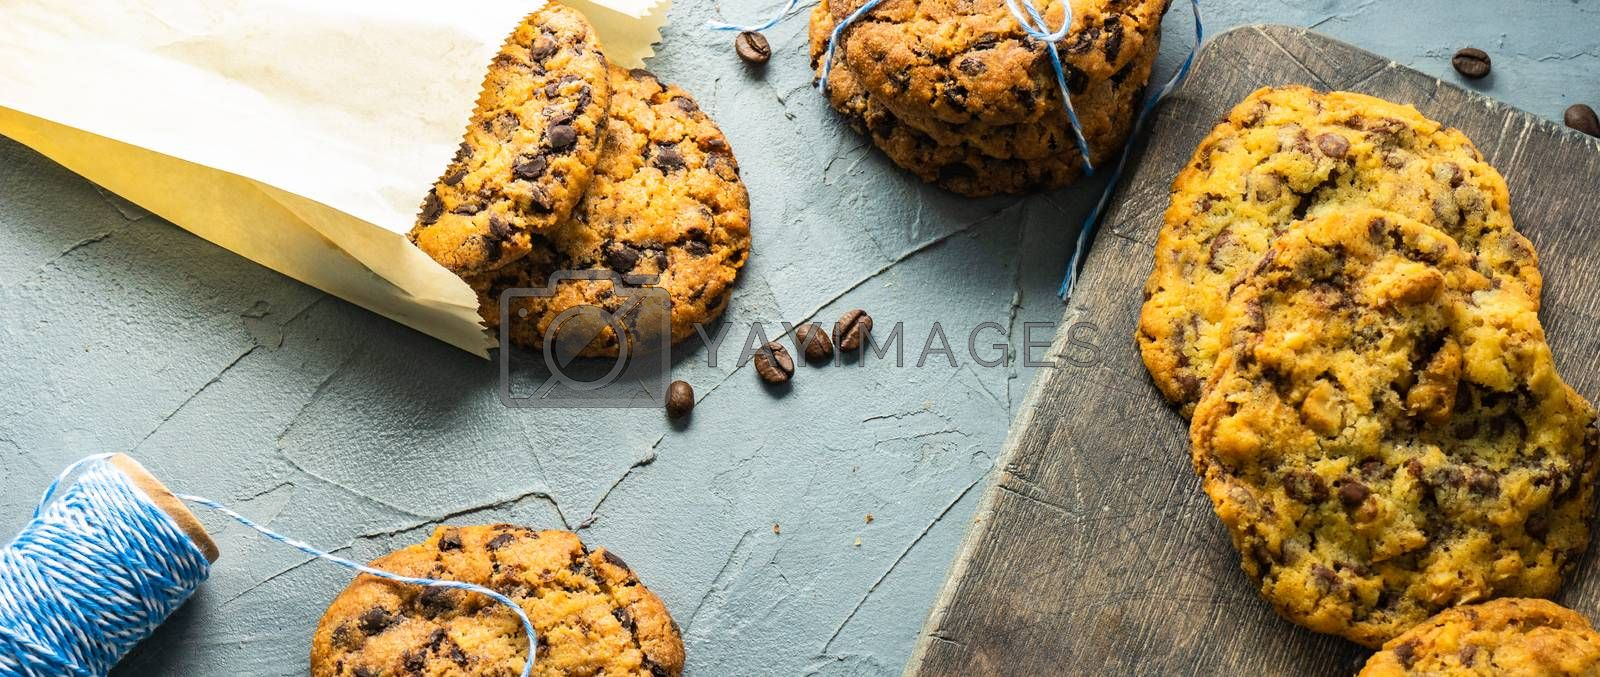 Homemade cookies with chocolate and coffee on rustic background with copy space